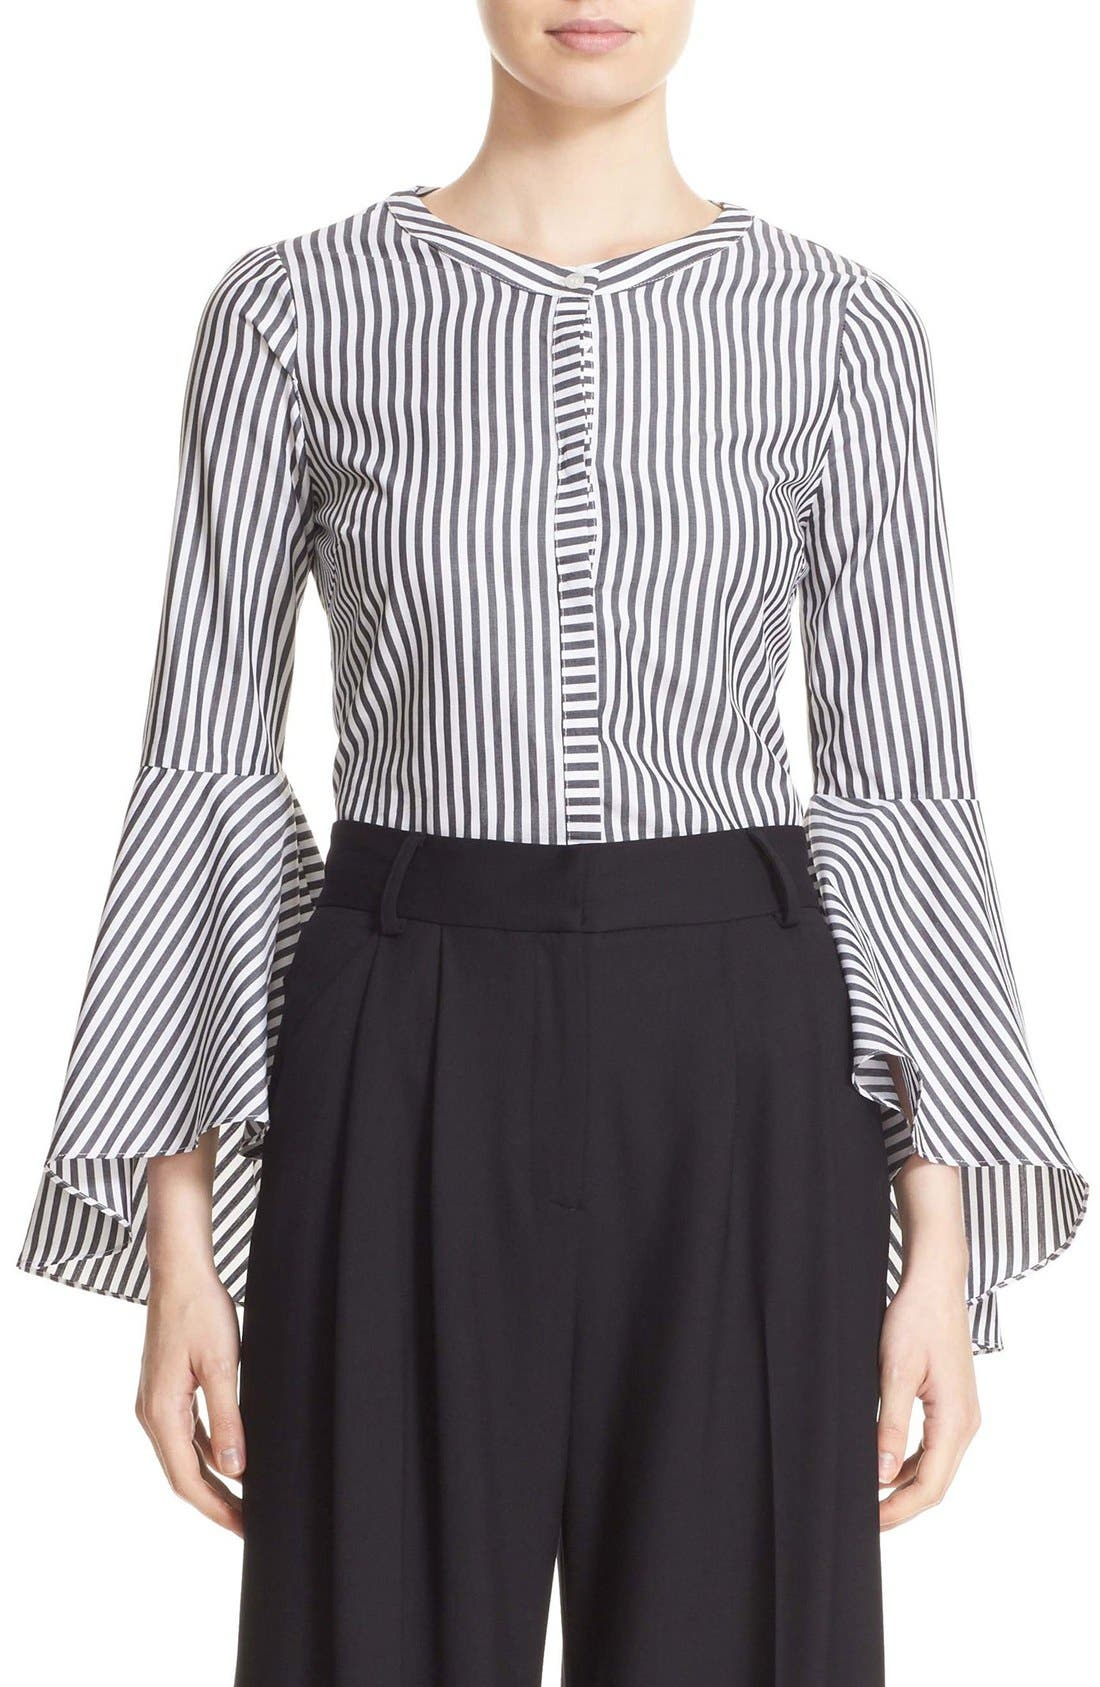 'Ruthie' Stripe Cotton Bell Sleeve Blouse,                             Main thumbnail 1, color,                             001